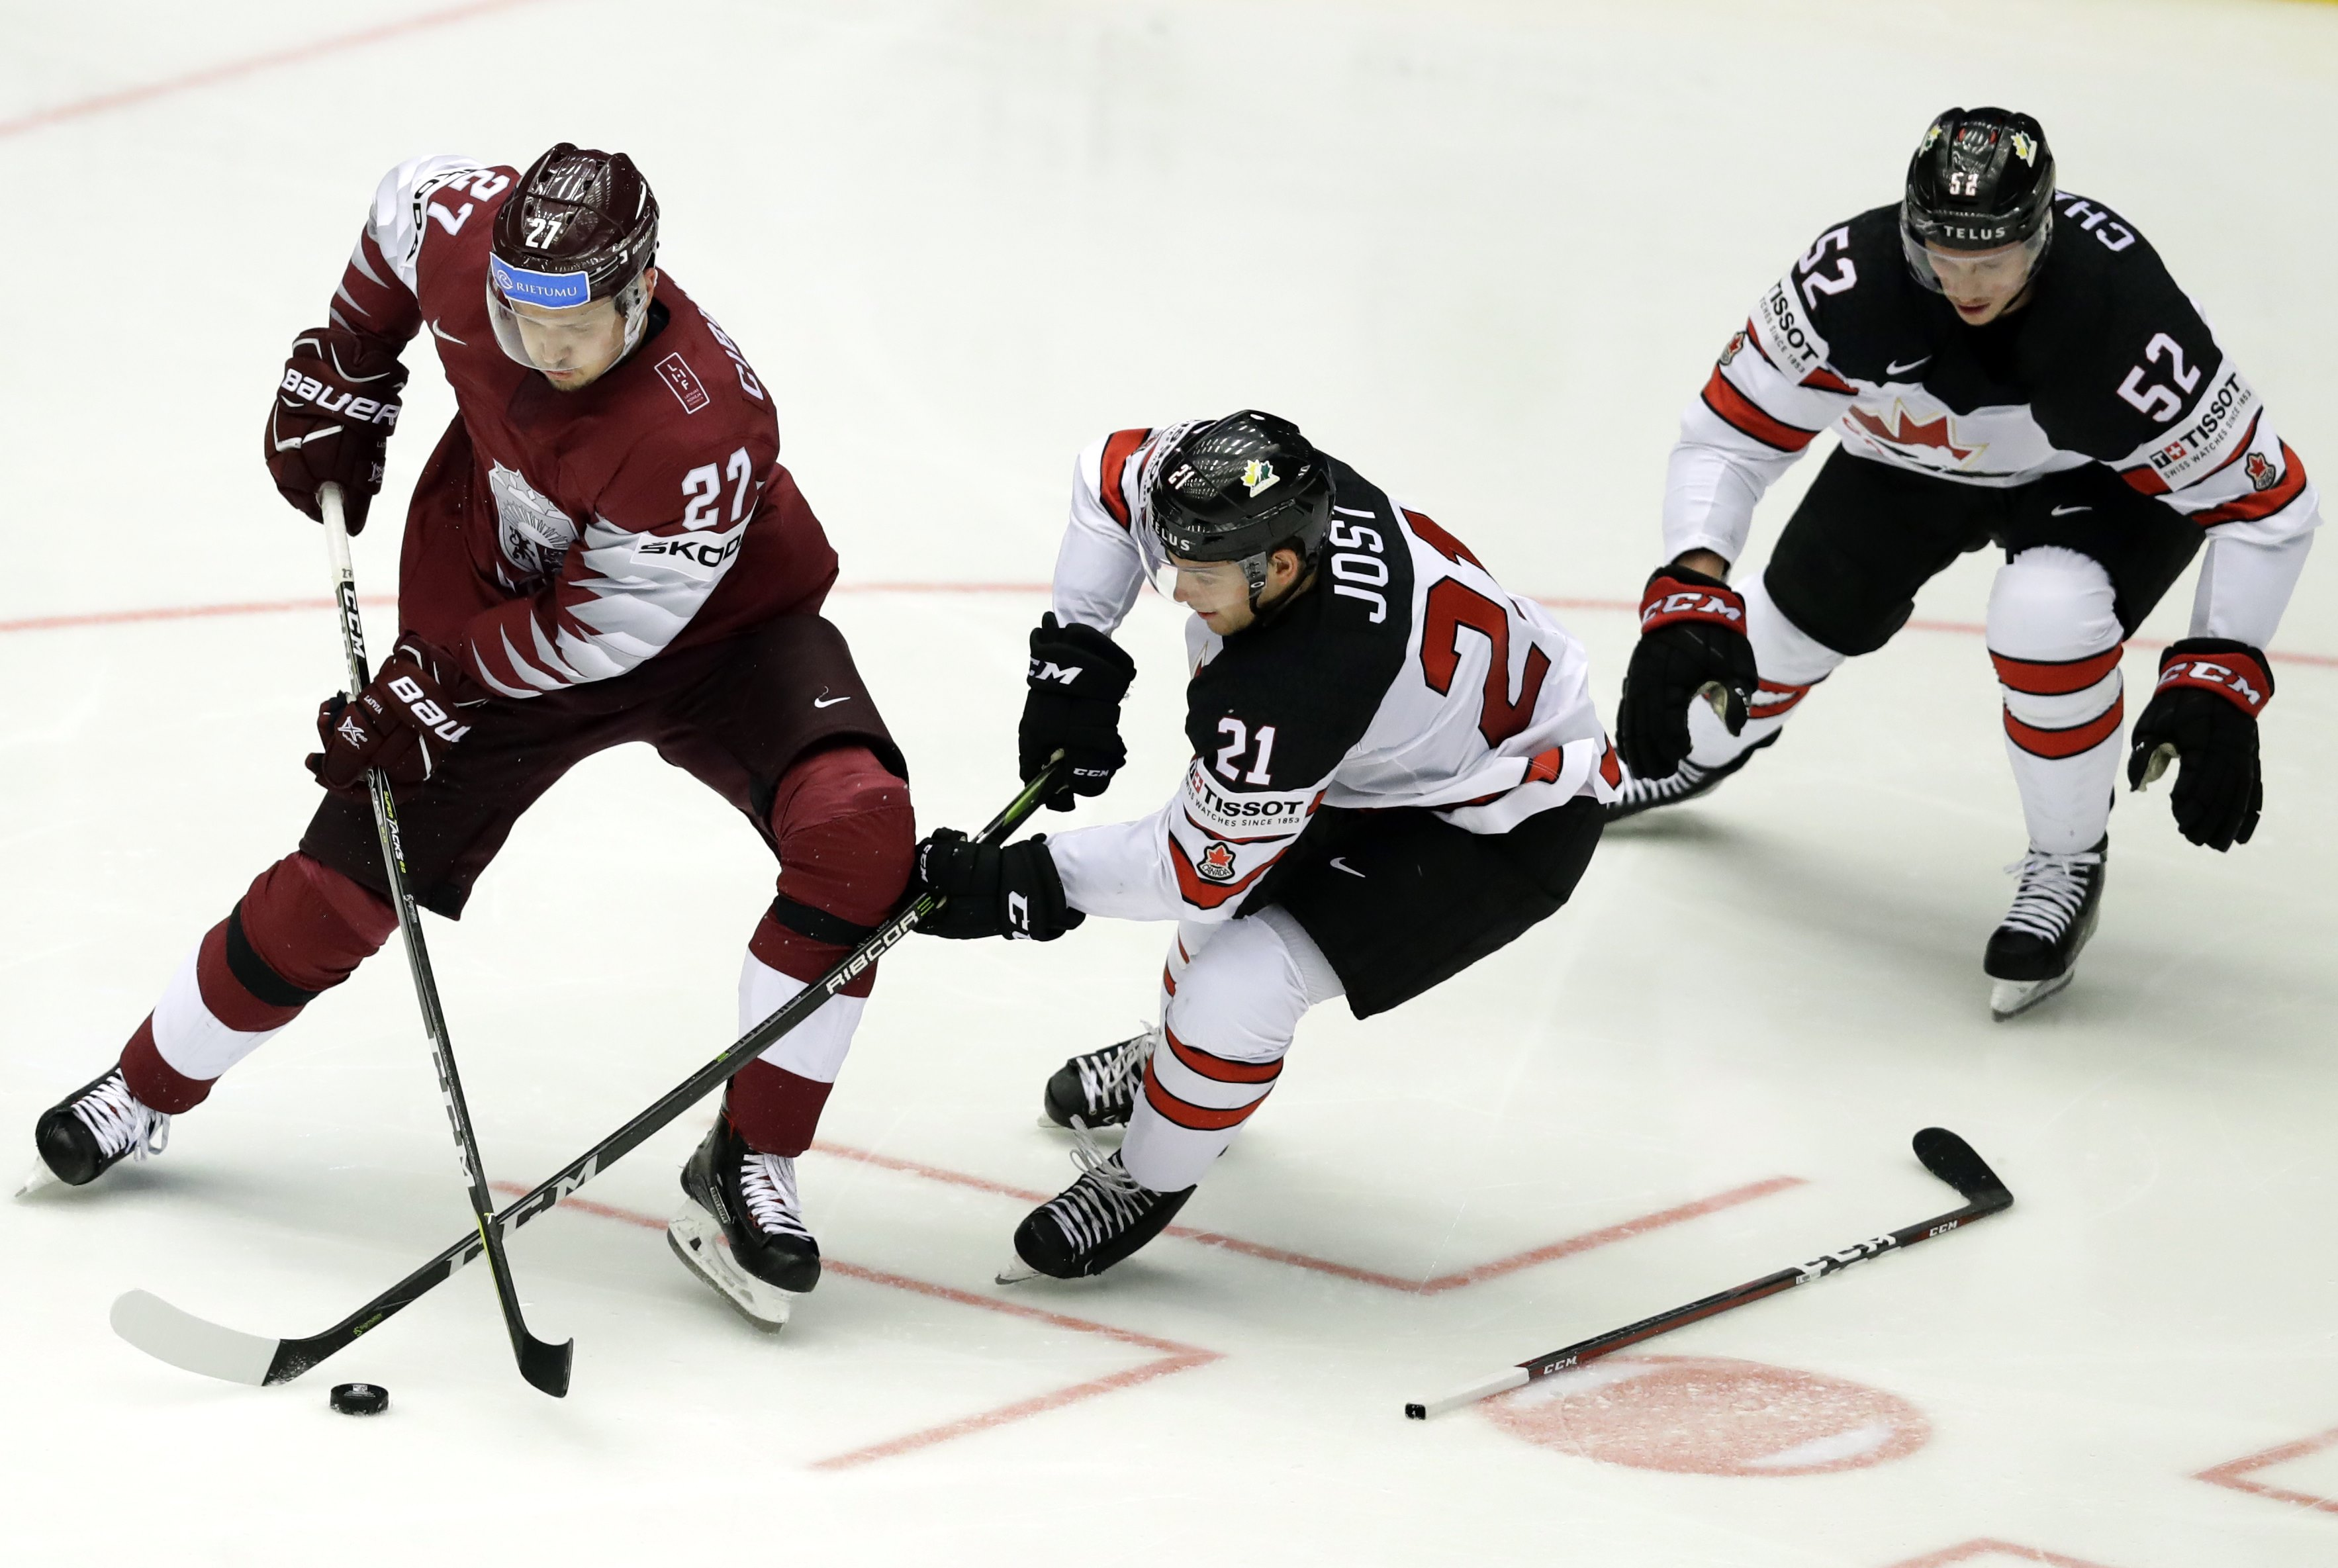 2018-05-14T193012Z_802200101_UP1EE5E1I6BJP_RTRMADP_3_HOCKEY-WORLD-CAN-LAT